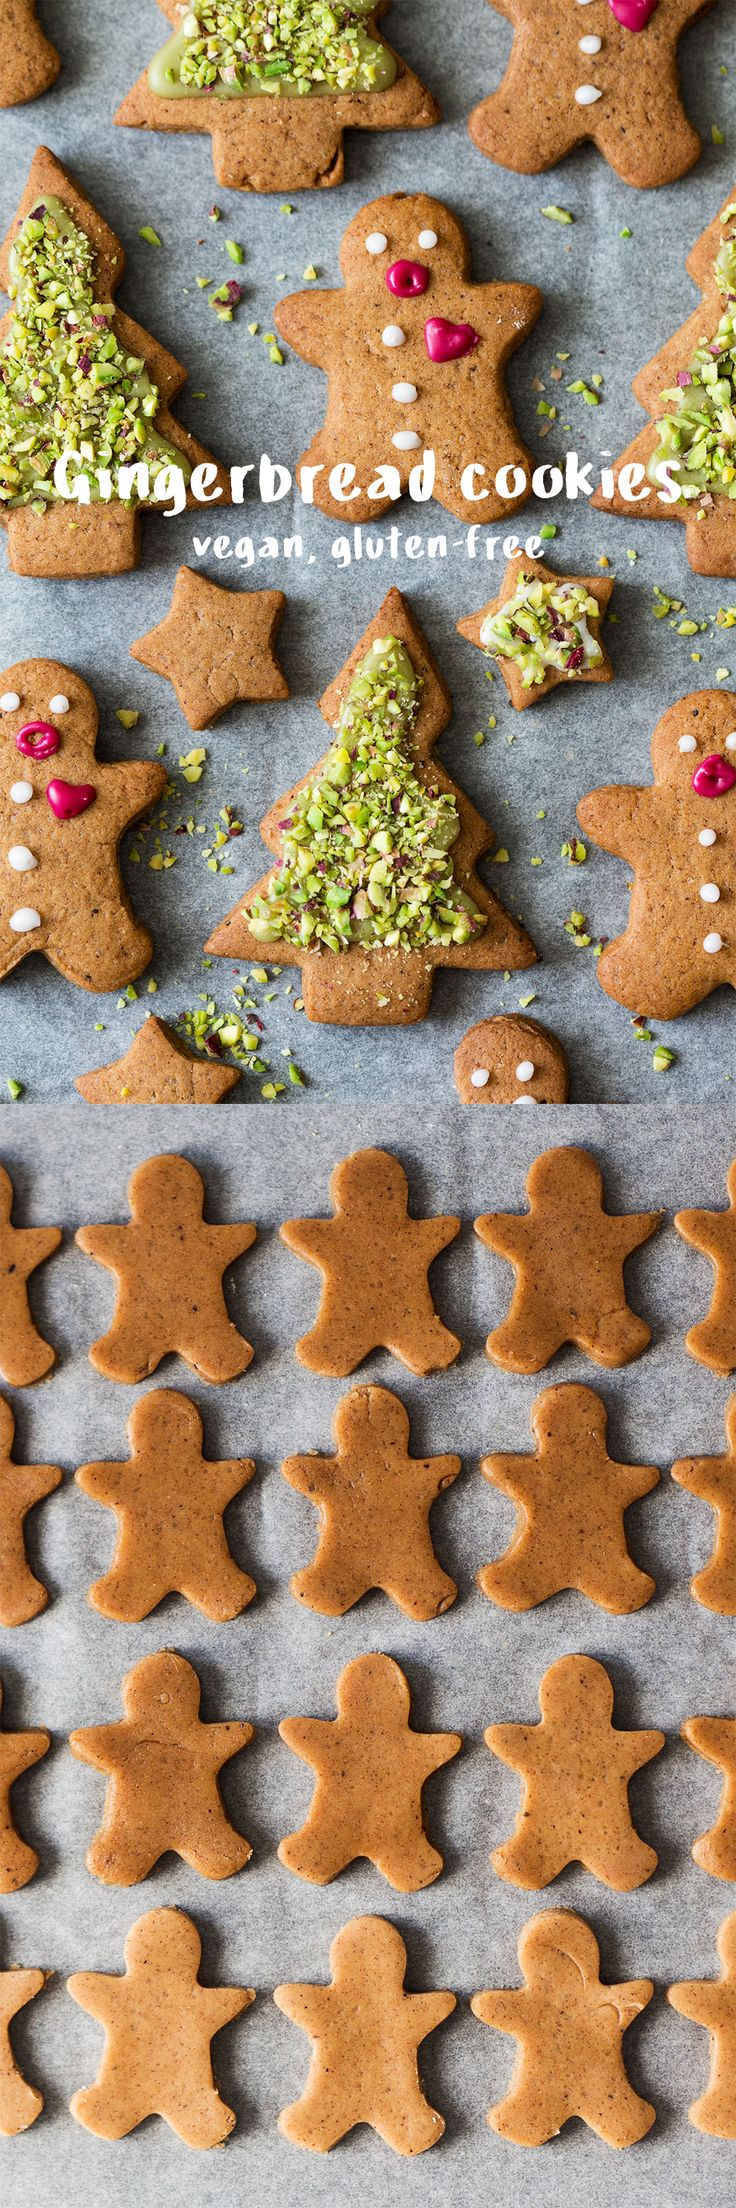 These #vegan #gingerbreadcookies are #easy to make, perfectly #spiced and fun to decorate (decorated with all natural, homemade food dyes). They can easily be made #glutenfree too. #cookies #xmas #gingerbread #gingerbreadmen #recipe #recipes #vegetarian #baking #biscuits